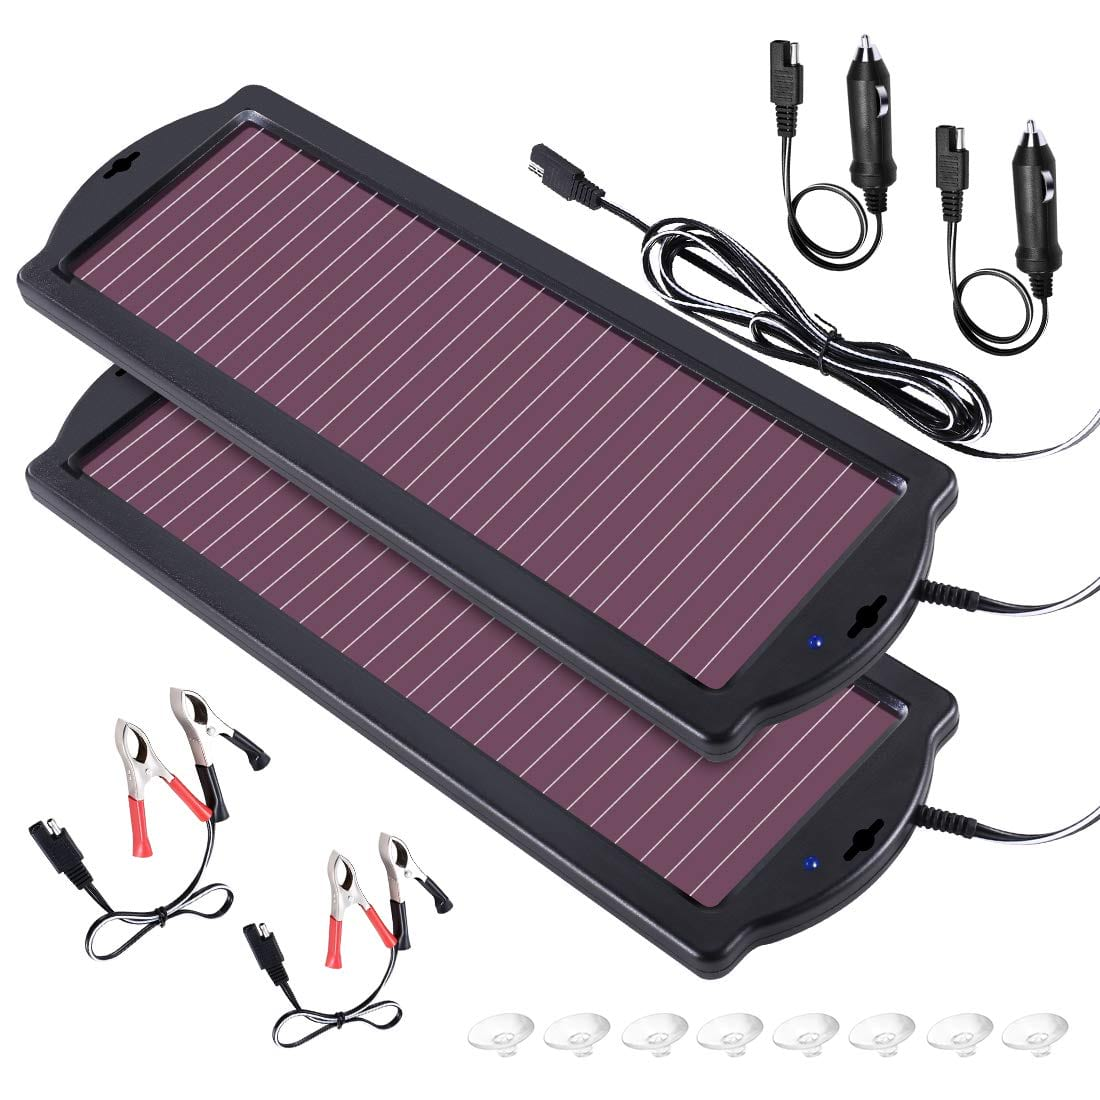 POWOXI 1.8 W Solar Battery Charger